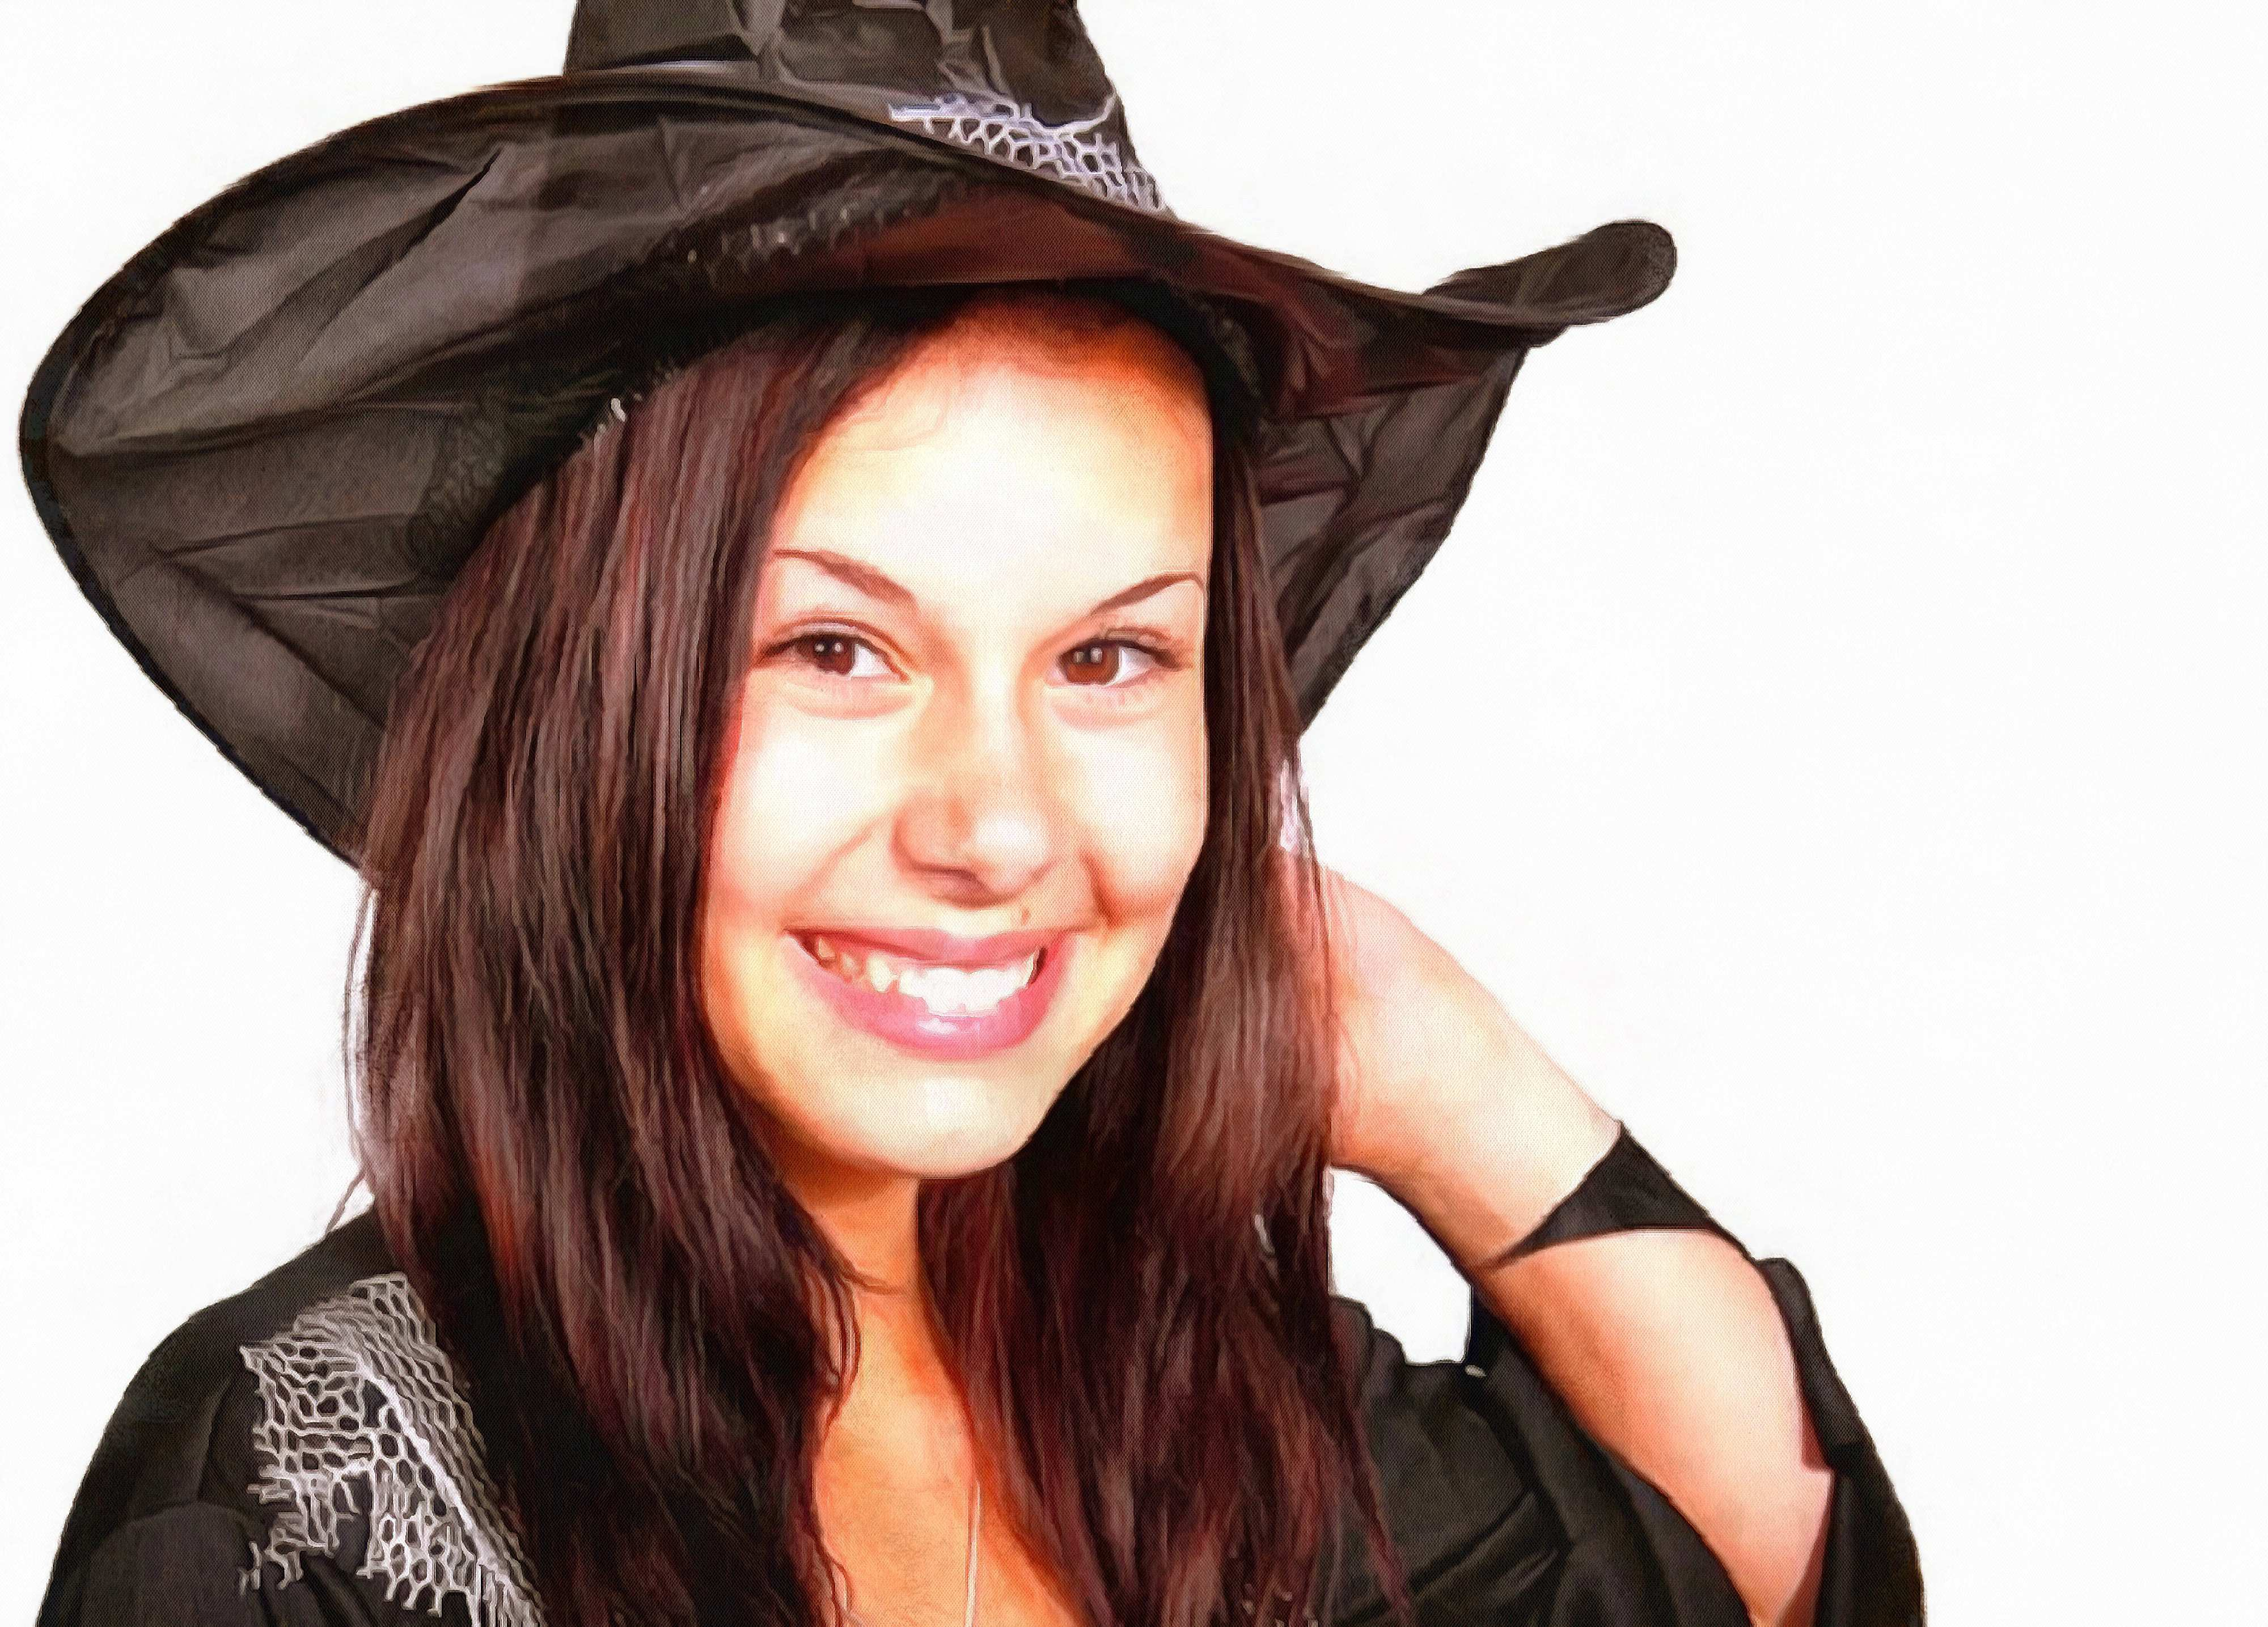 witch, lady, woman, girl, witch, holiday, magic, halloween - halloween free image, free images, public domain images, stock free images, download image for free, halloween stock free images